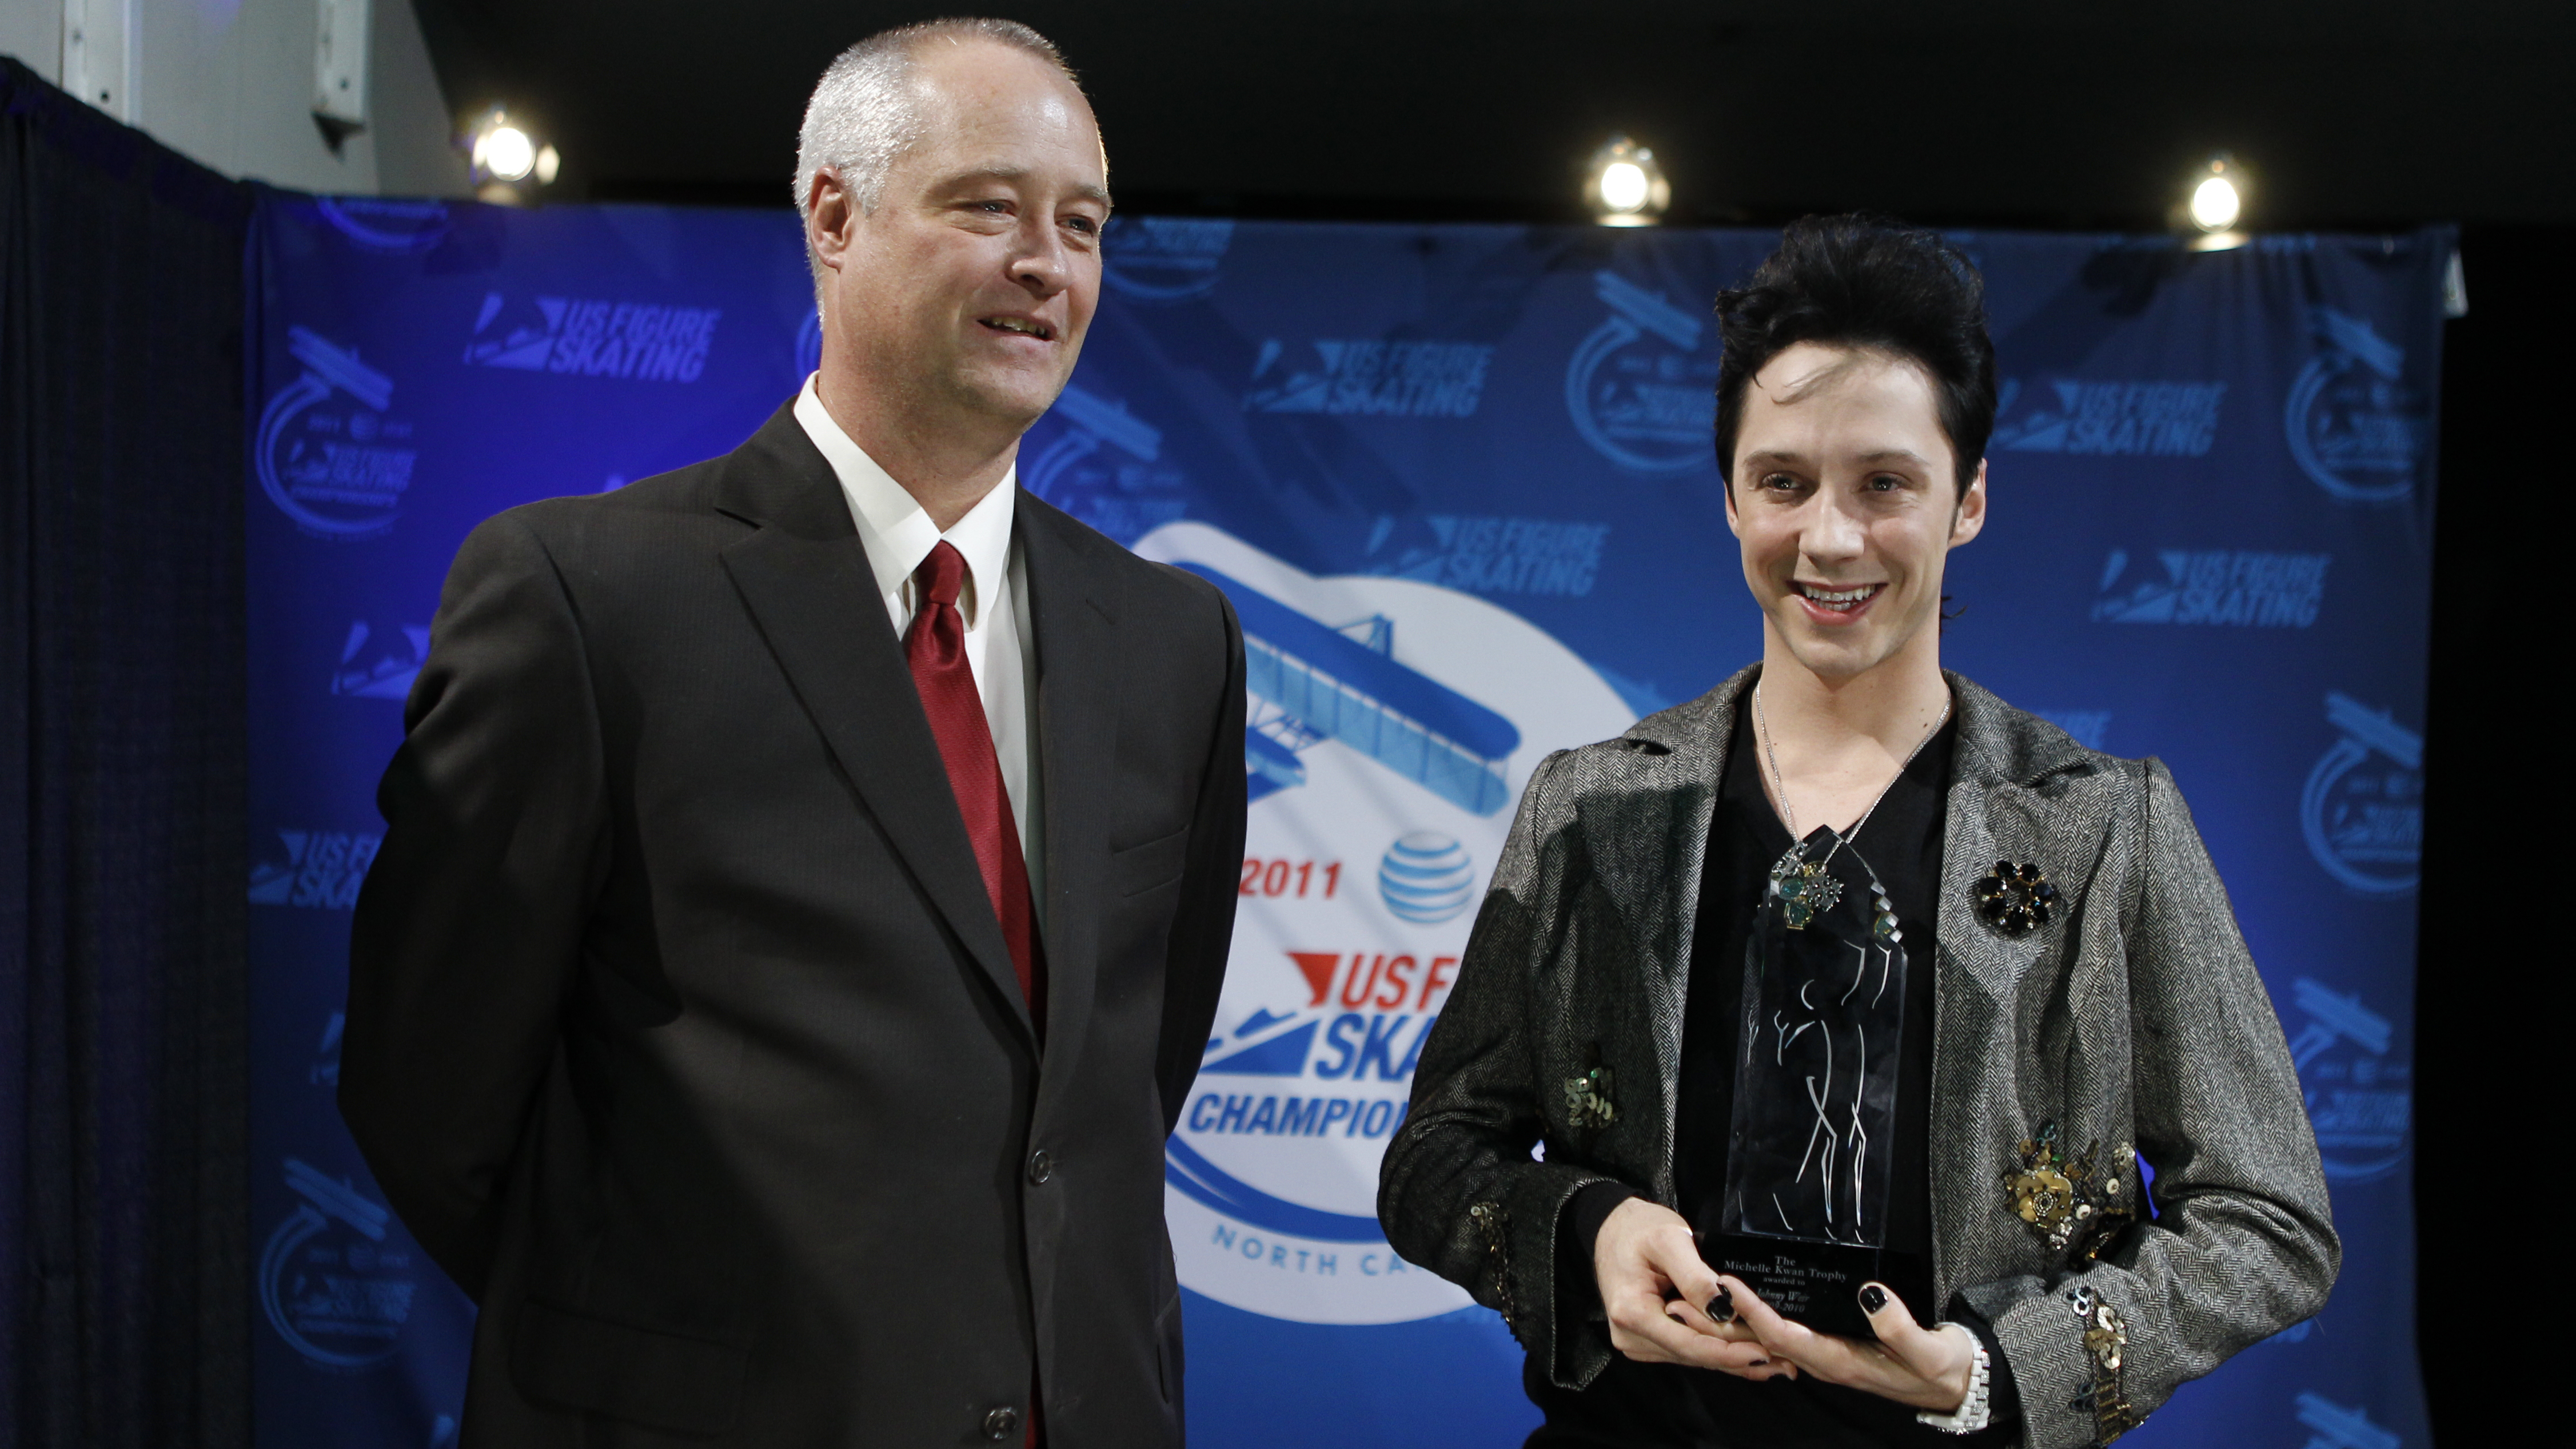 Johnny Weir accepts the Readers Choice Award in 2011